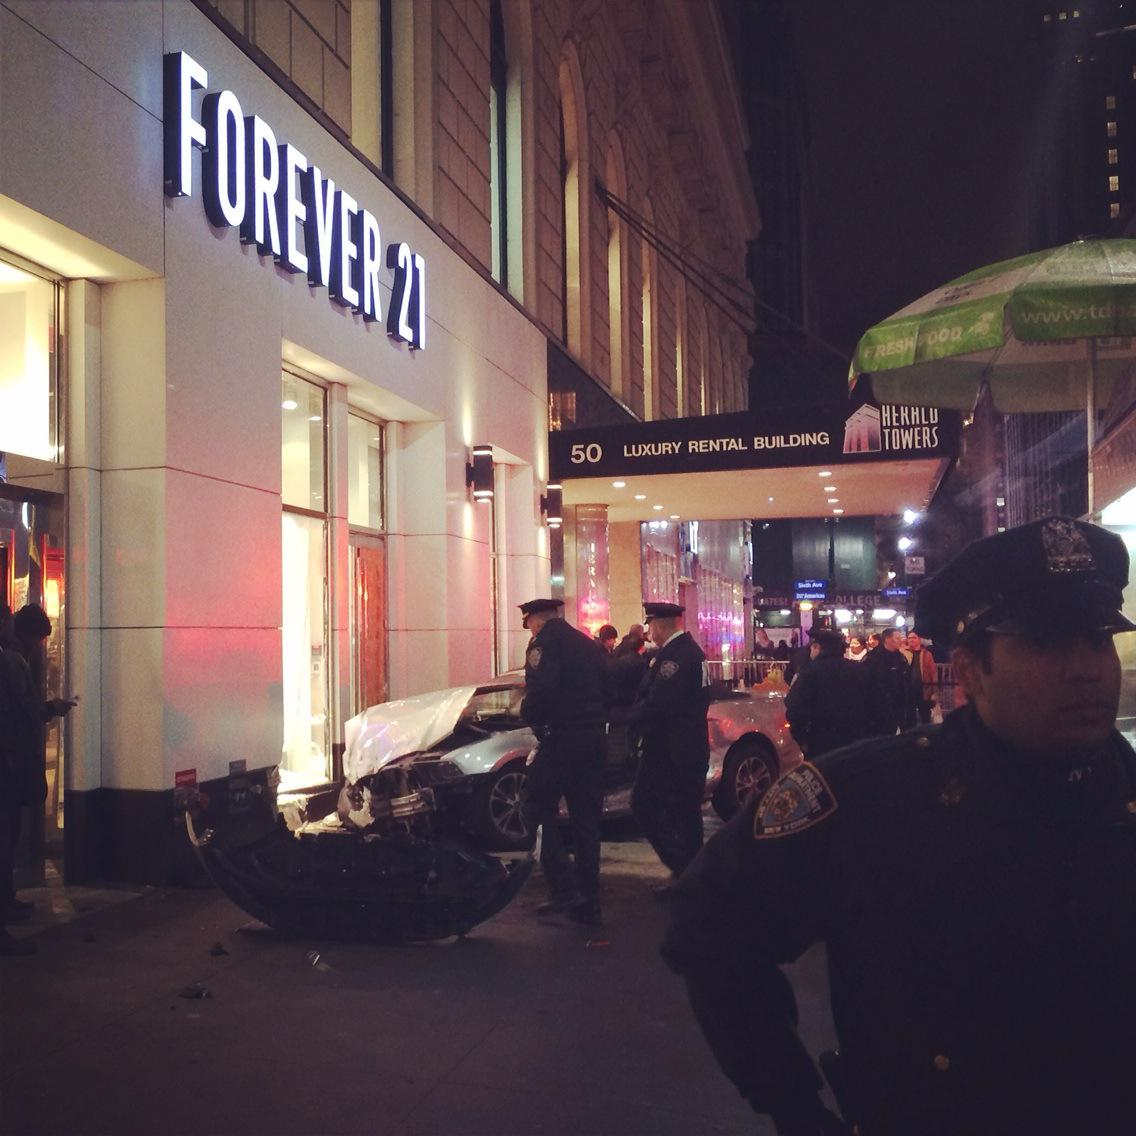 """@MahsaWho: Car drives into forever 21 store on 34th street. @ny1 http://t.co/4P5gBNYjoI"" Thankfully, had passed that spot 20 secs earlier!"